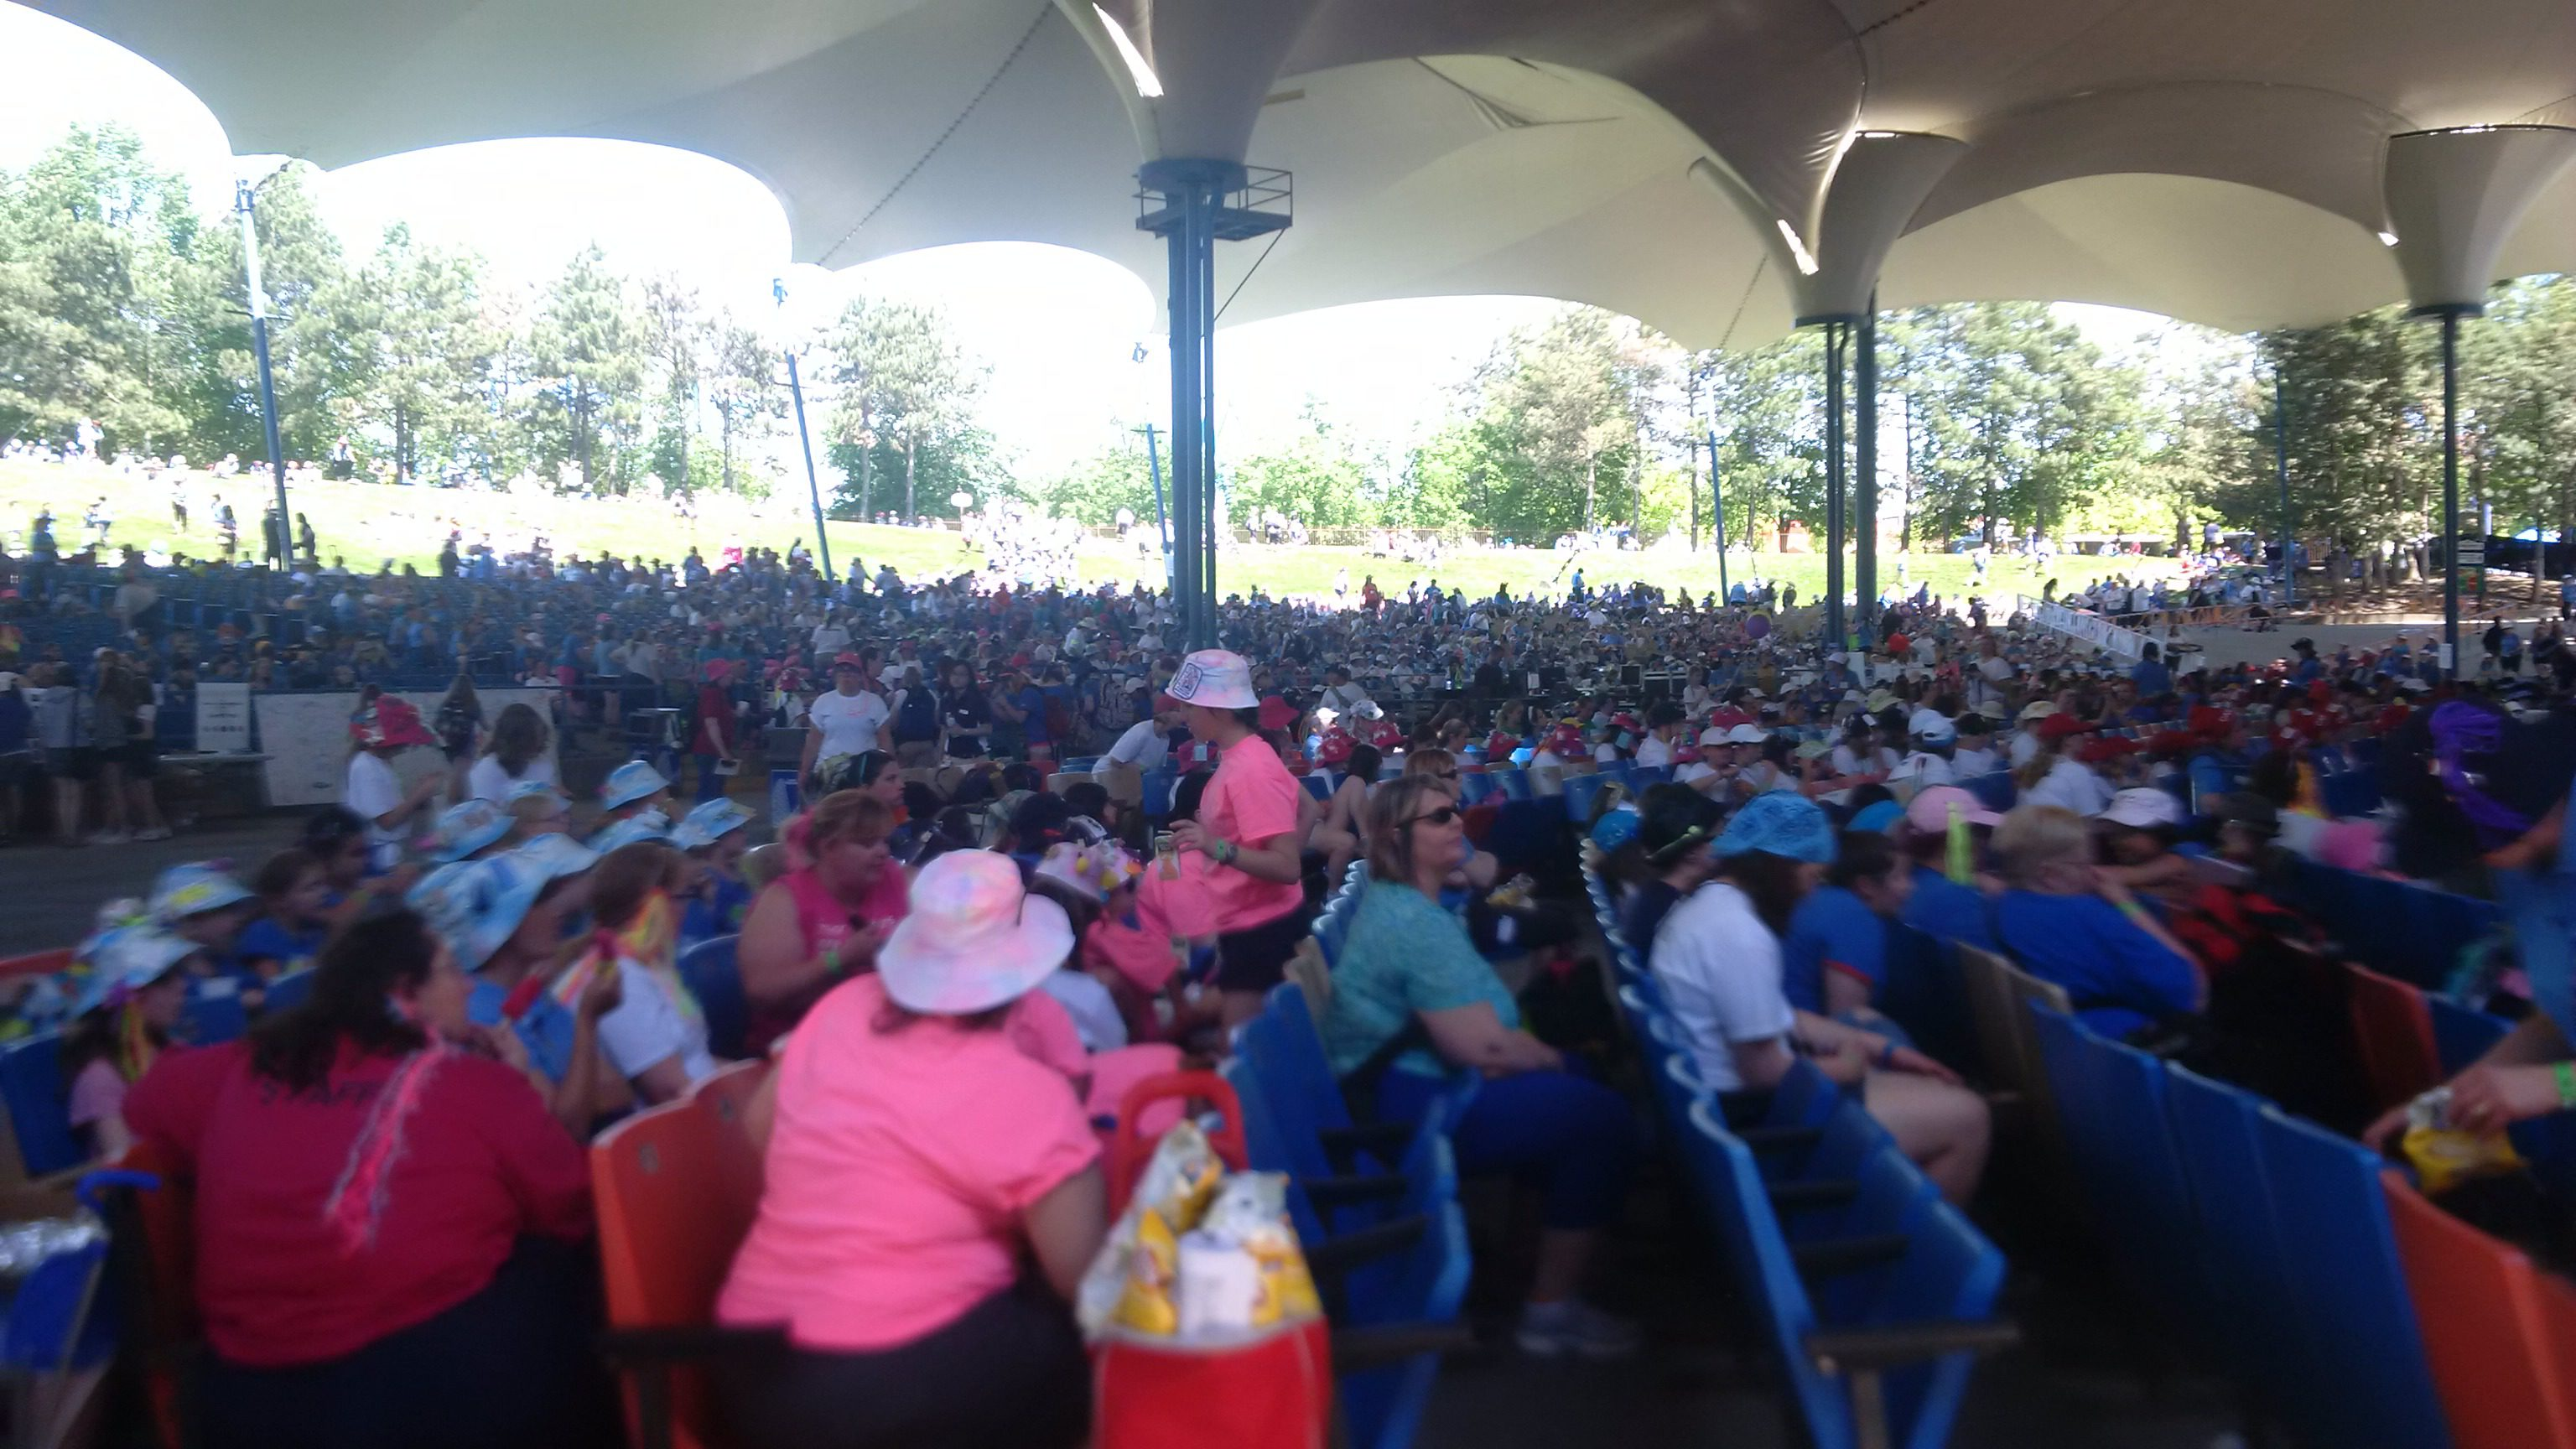 Rally Day for the 100th anniversary of Guiding in Canada